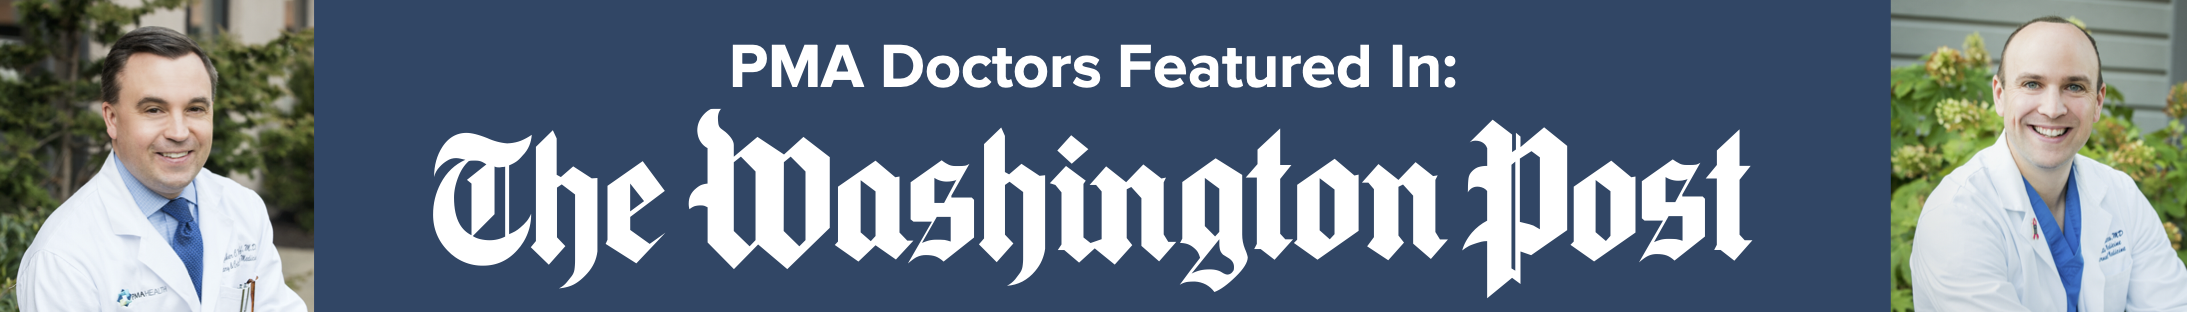 PMA Doctors Featured in the Washington Post! (1)